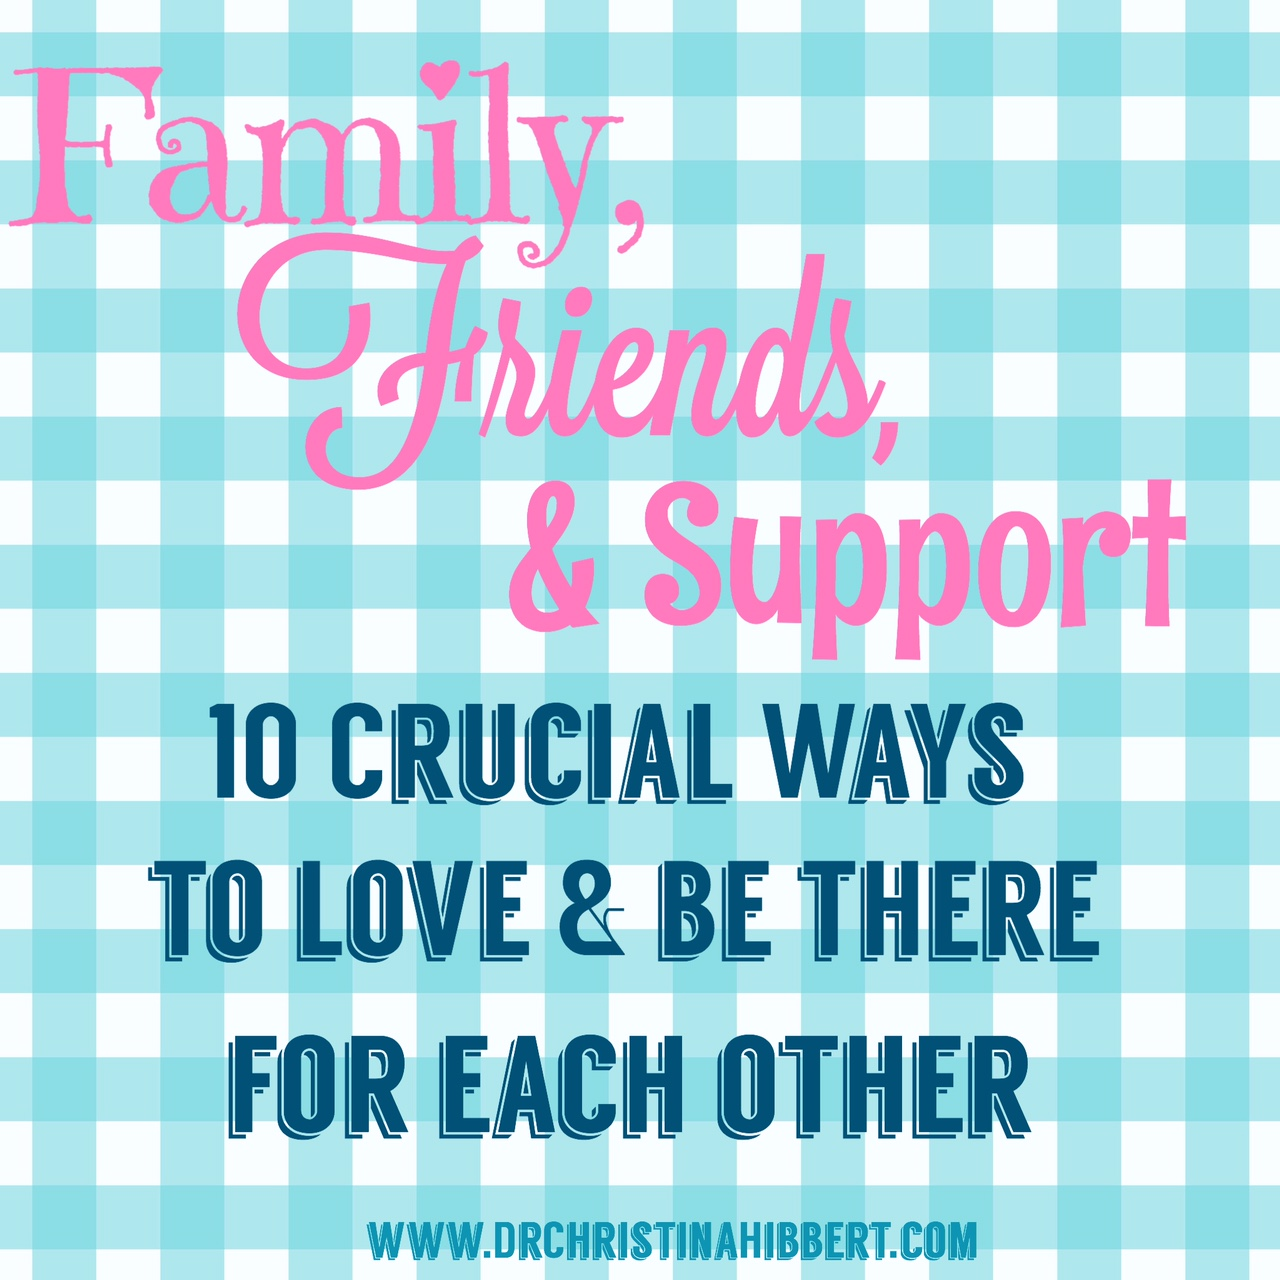 Family Friends Support 10 Crucial Ways To Love Be There For